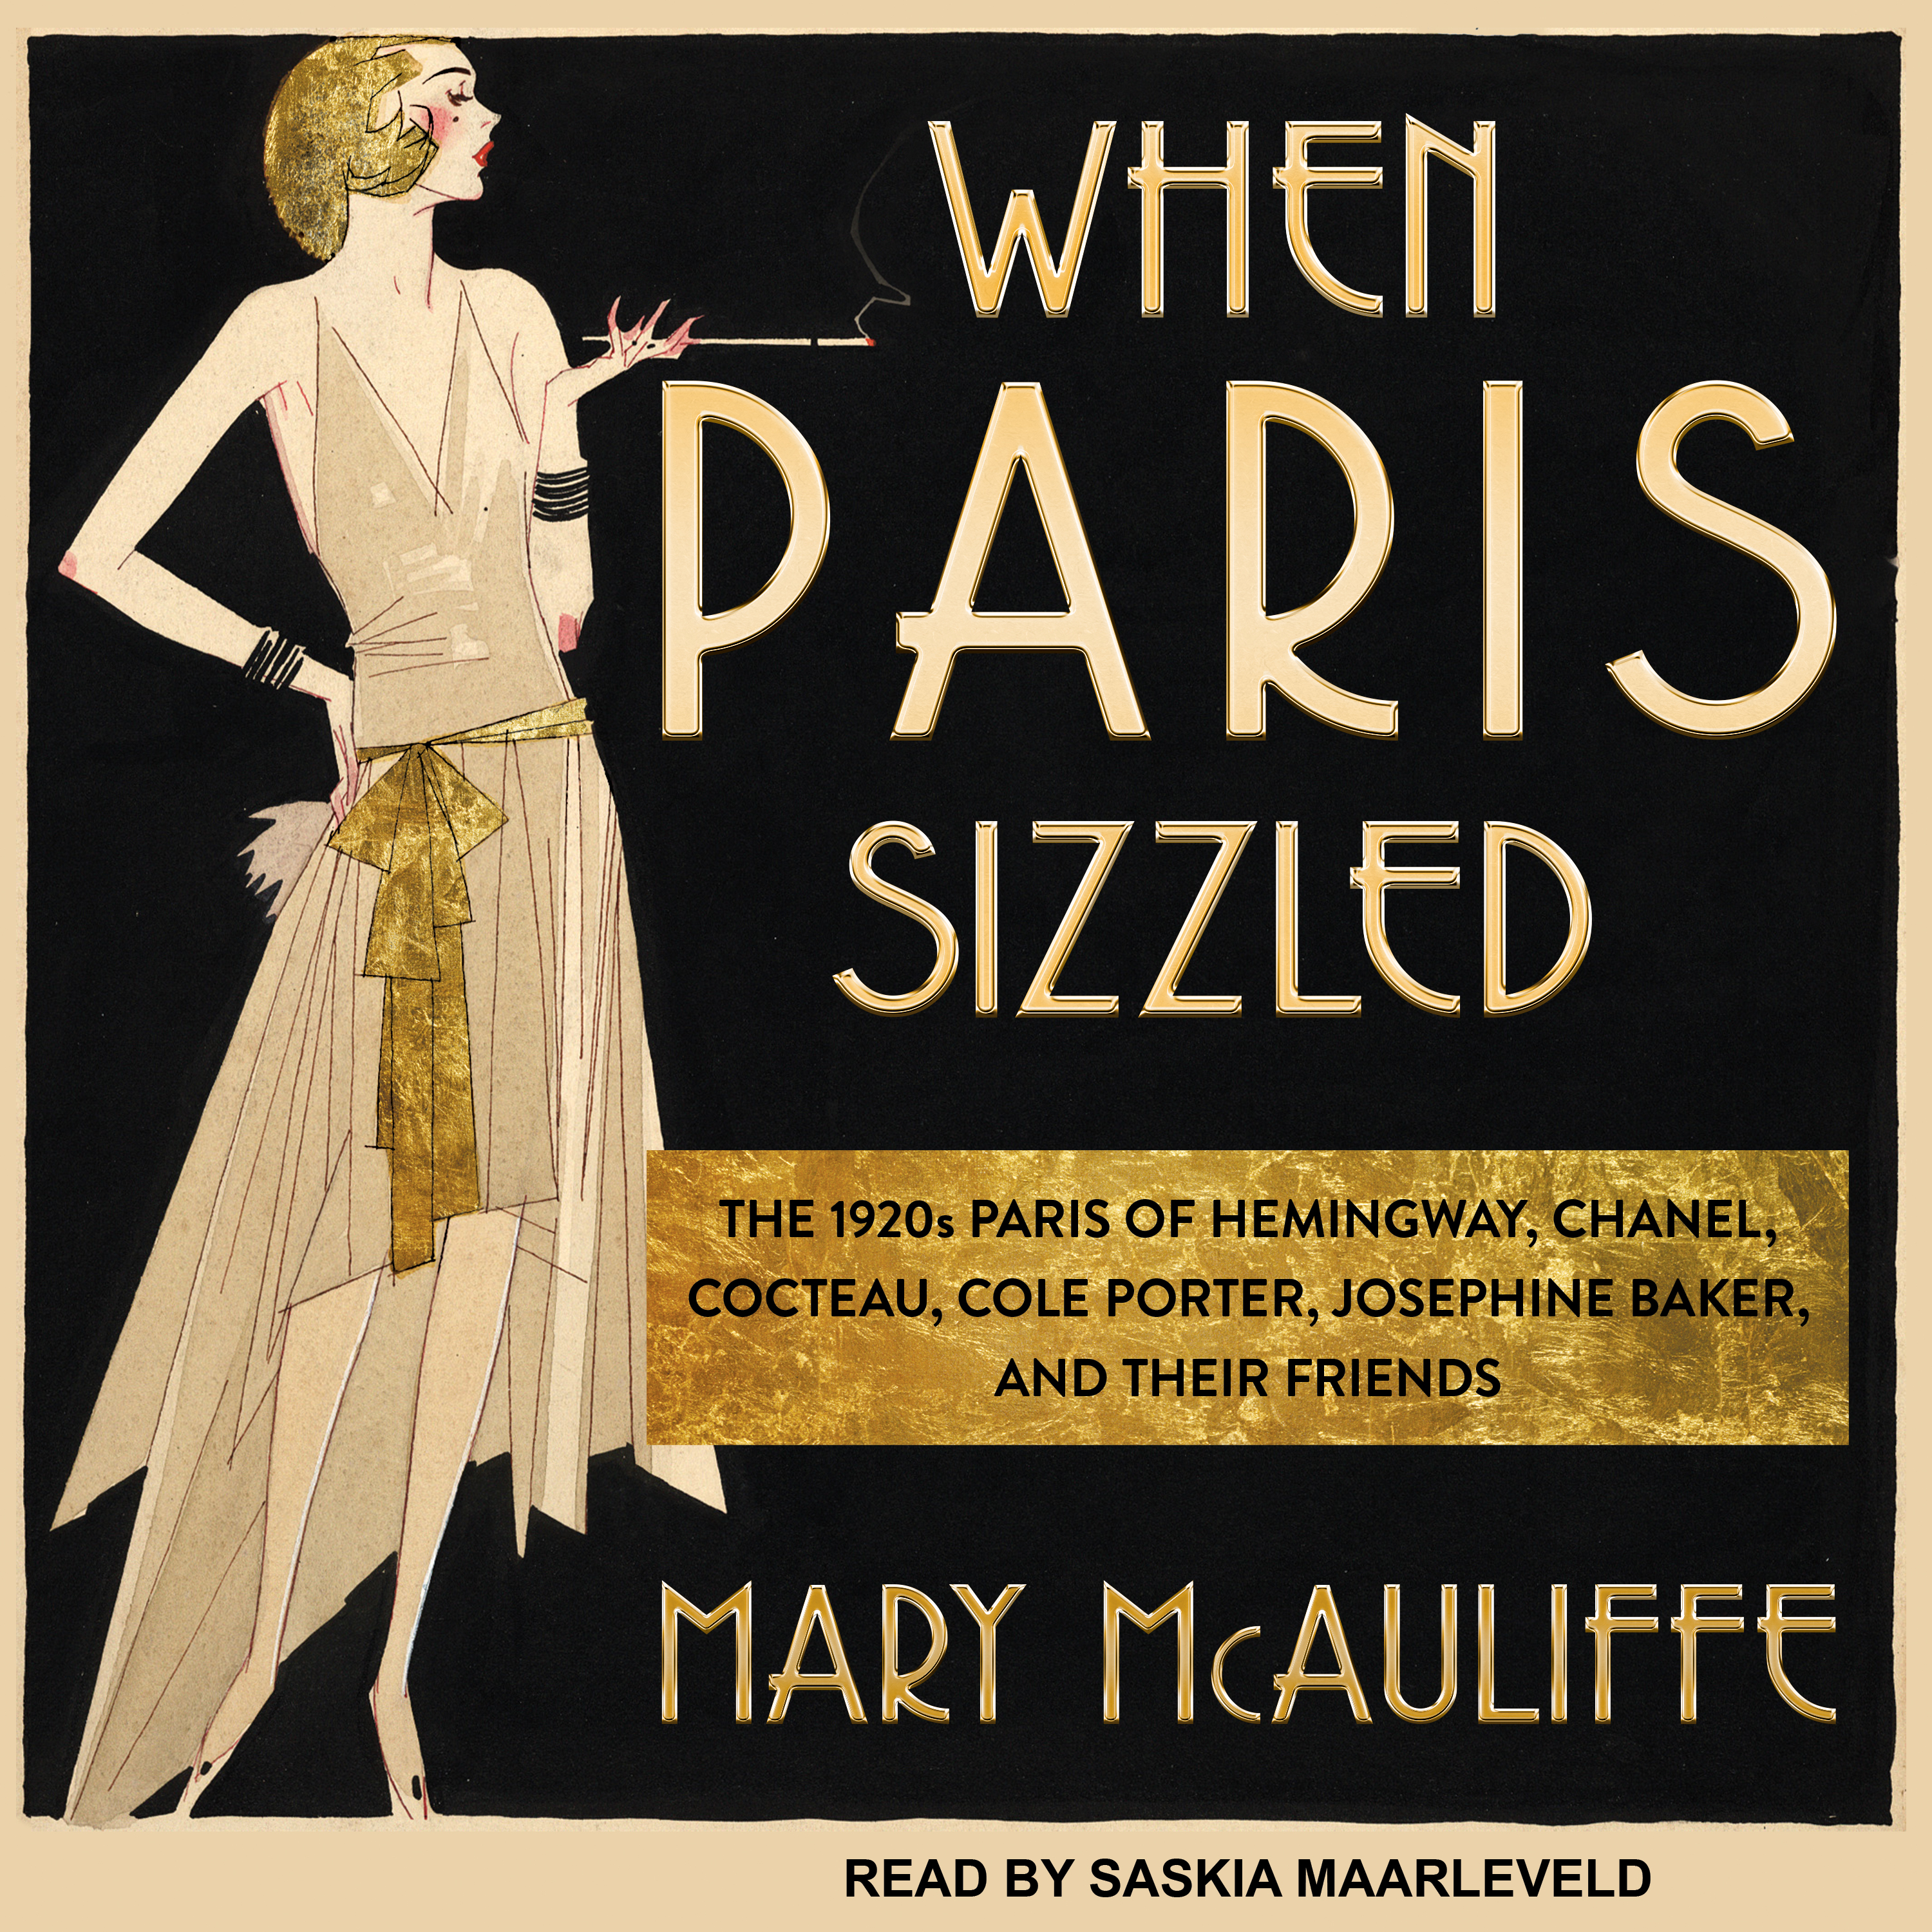 Printable When Paris Sizzled: The 1920s Paris of Hemingway, Chanel, Cocteau, Cole Porter, Josephine Baker, and Their Friends Audiobook Cover Art